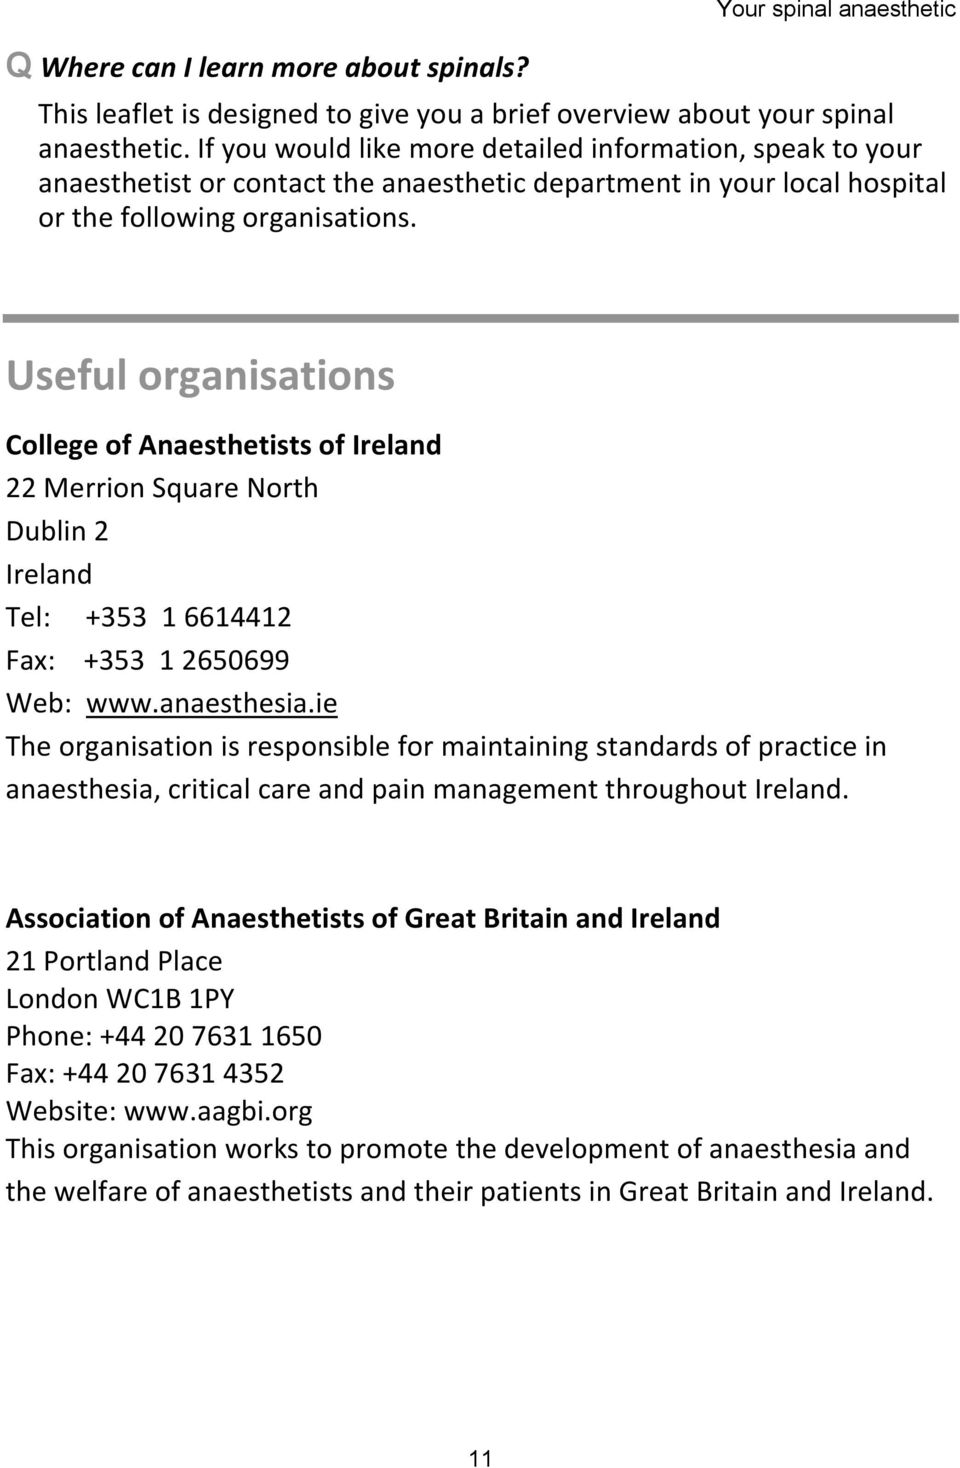 Useful organisations College of Anaesthetists of Ireland 22 Merrion Square North Dublin 2 Ireland Tel: +353 1 6614412 Fax: +353 1 2650699 Web: www.anaesthesia.